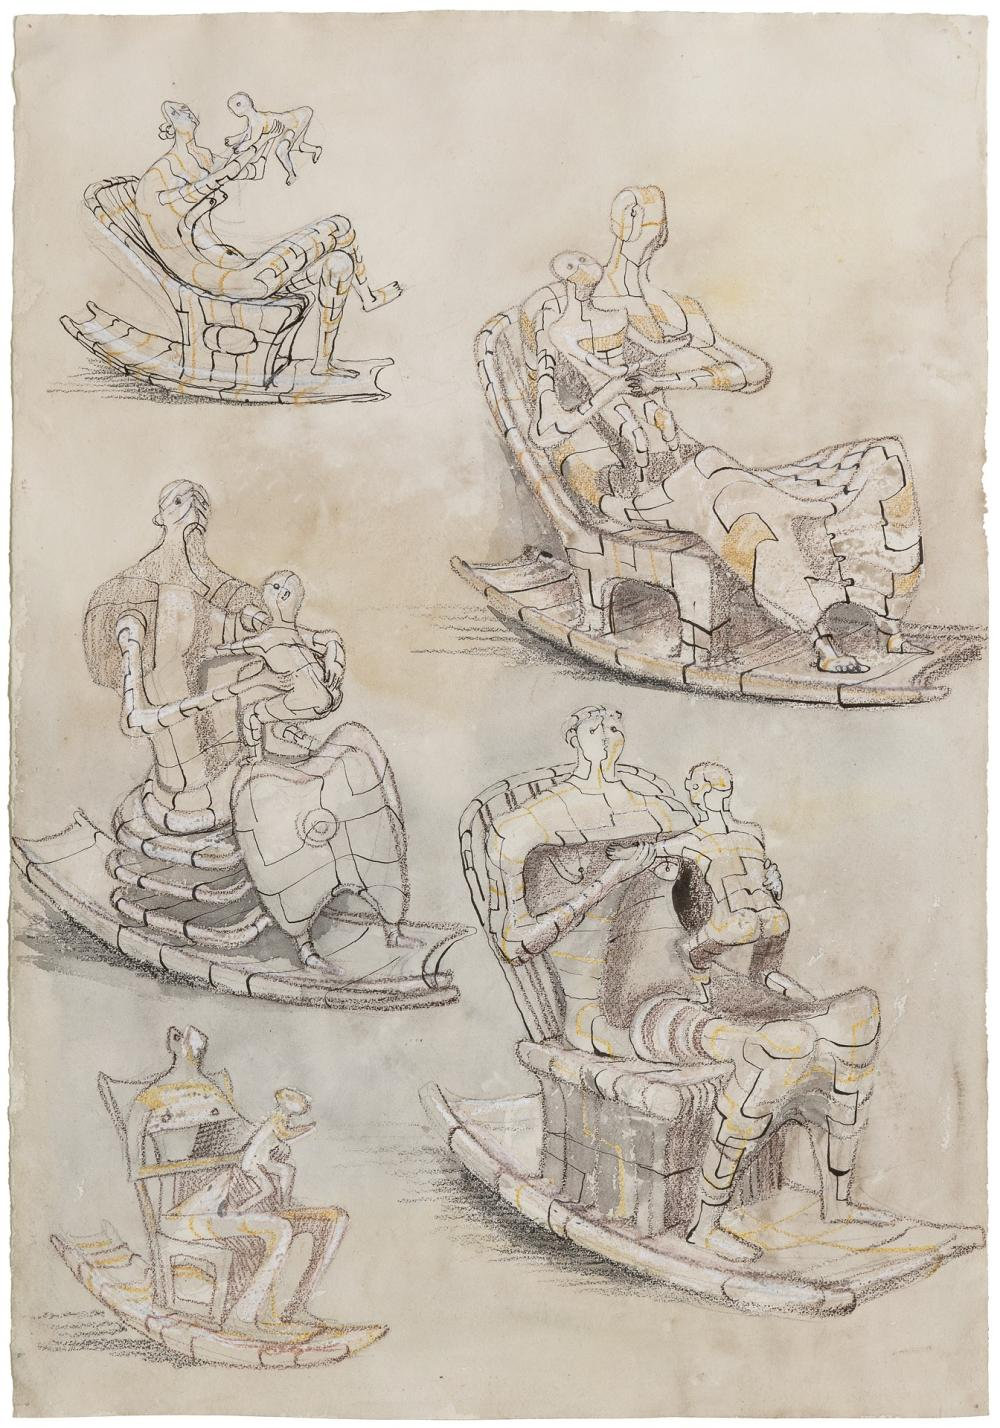 """HENRY MOORE, British (1898-1986), """"Rocking Chairs,"""" 1948, pencil, wax crayon, watercolor wash, pen and ink on paper, 22 1/2 x 15 1/2 inches"""